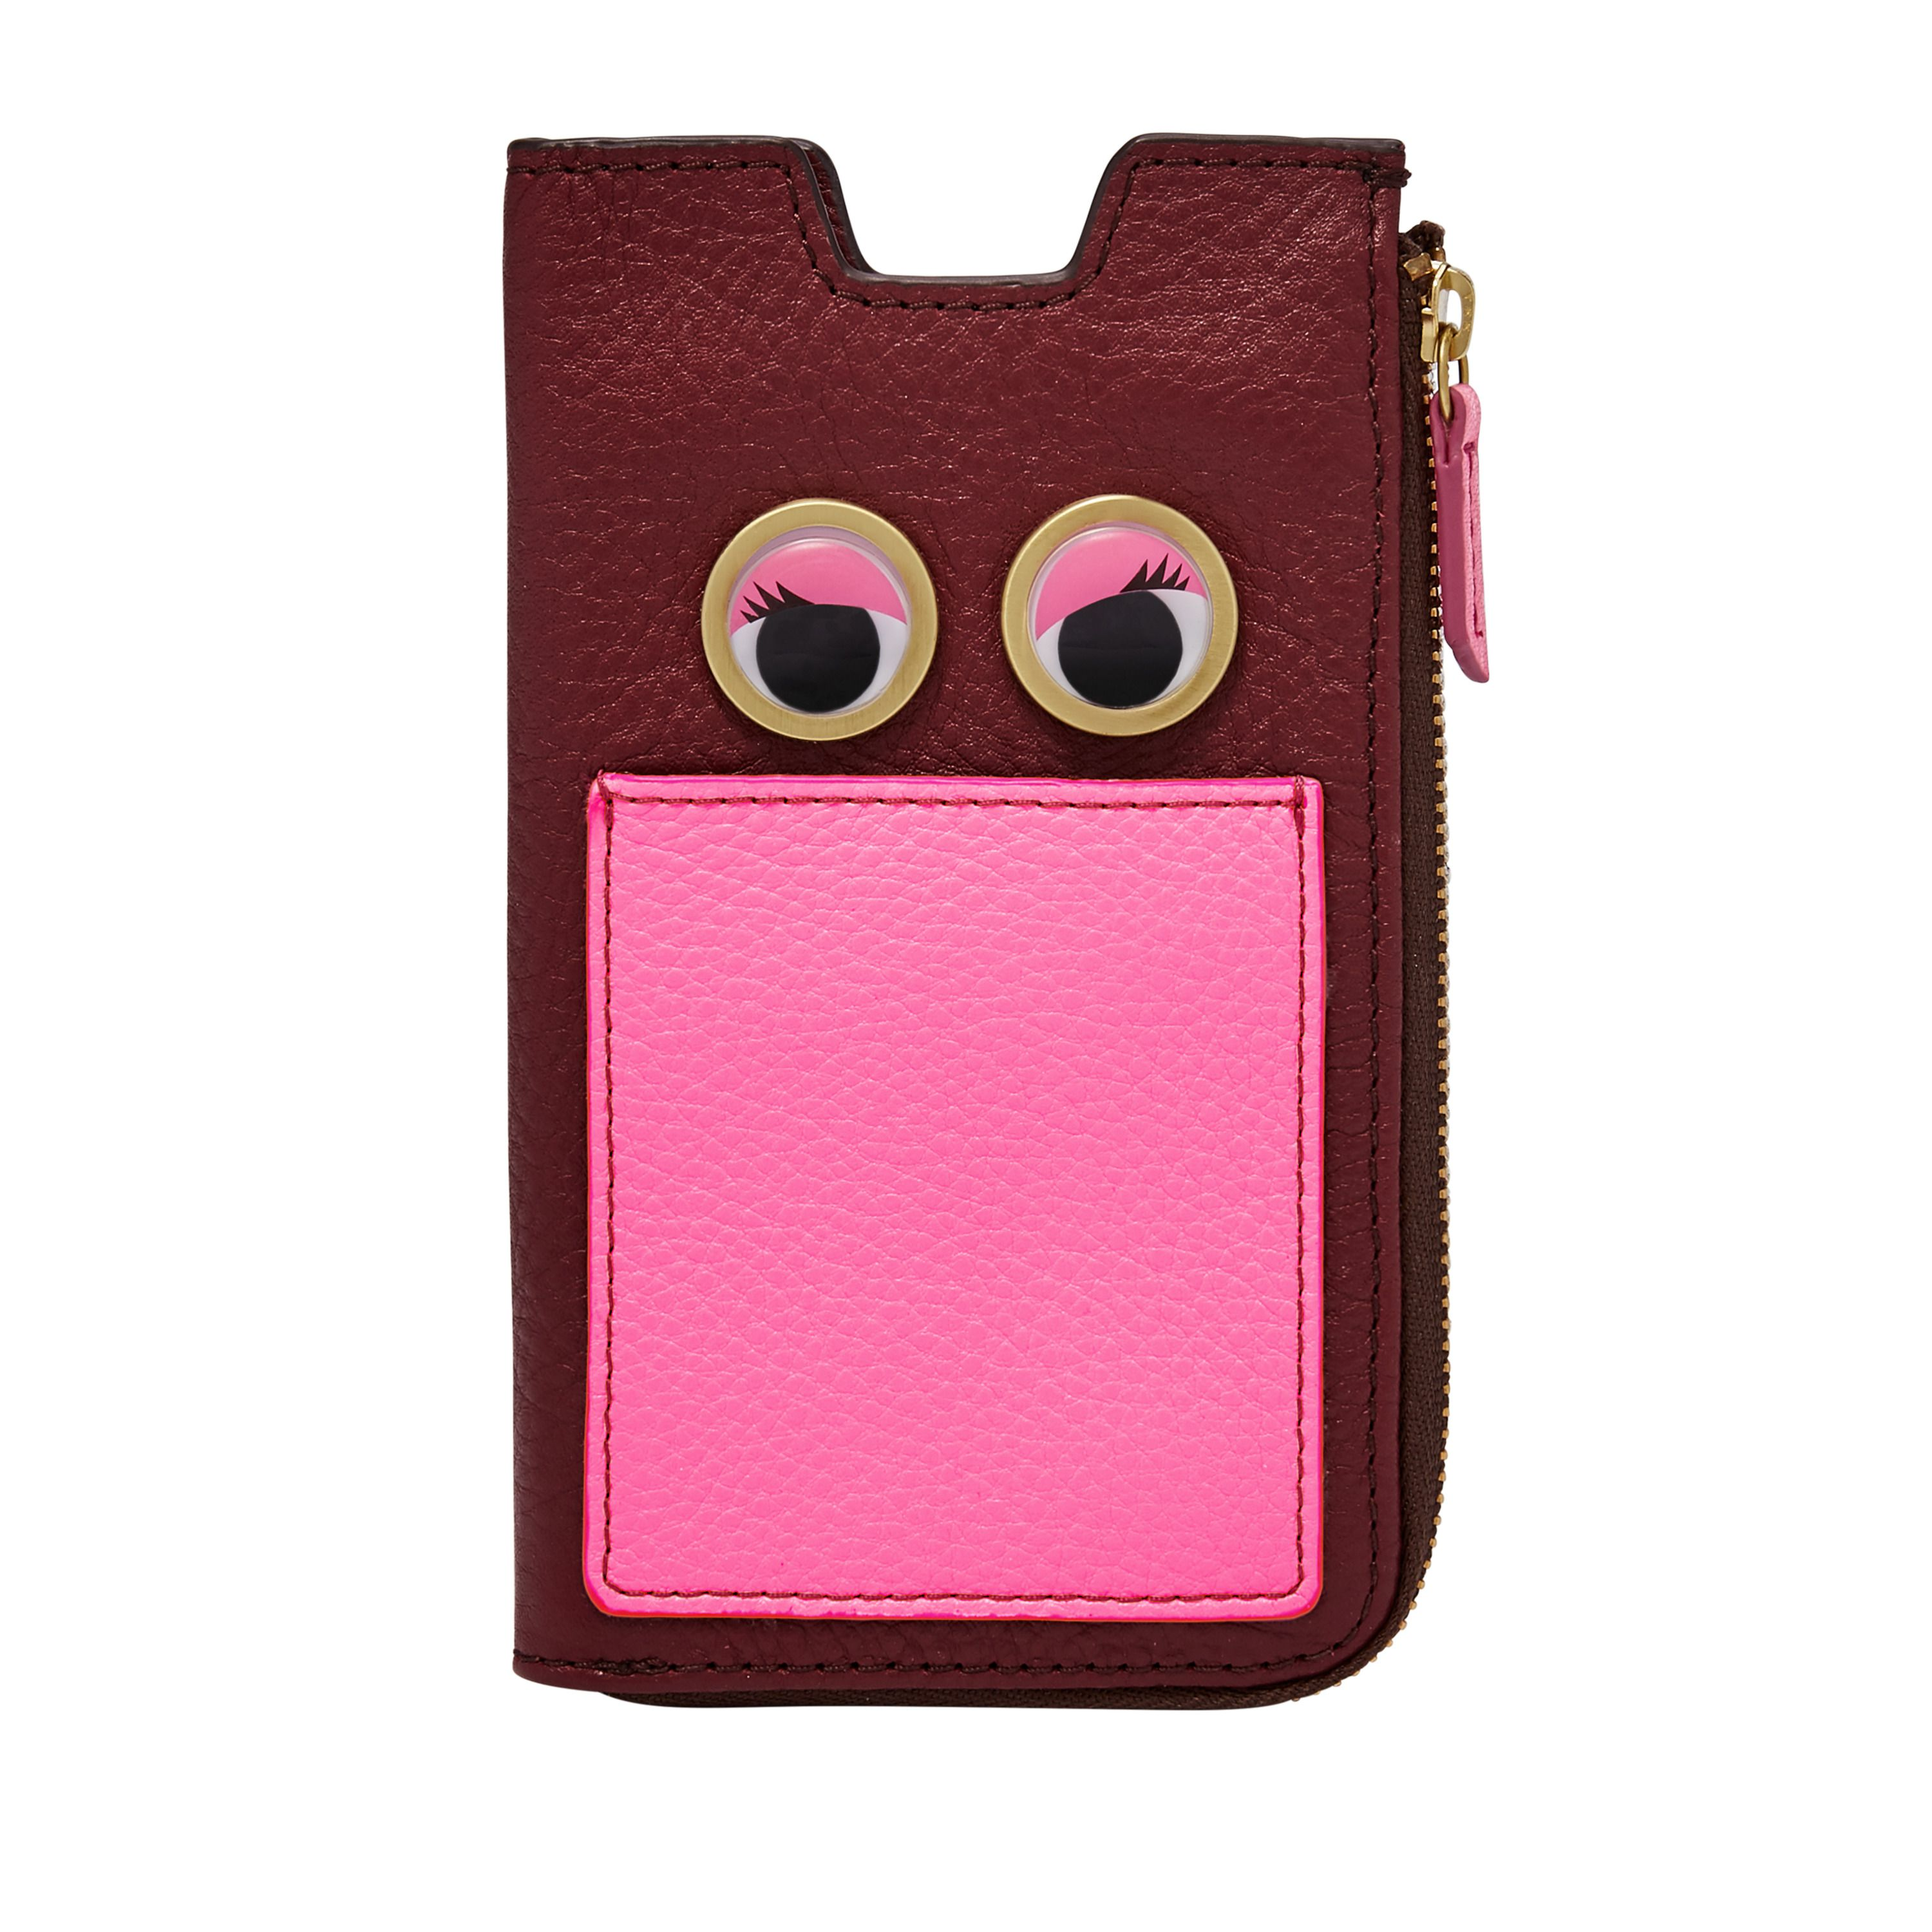 Fossil SL7319609 Phone Sleeve Purse Pink